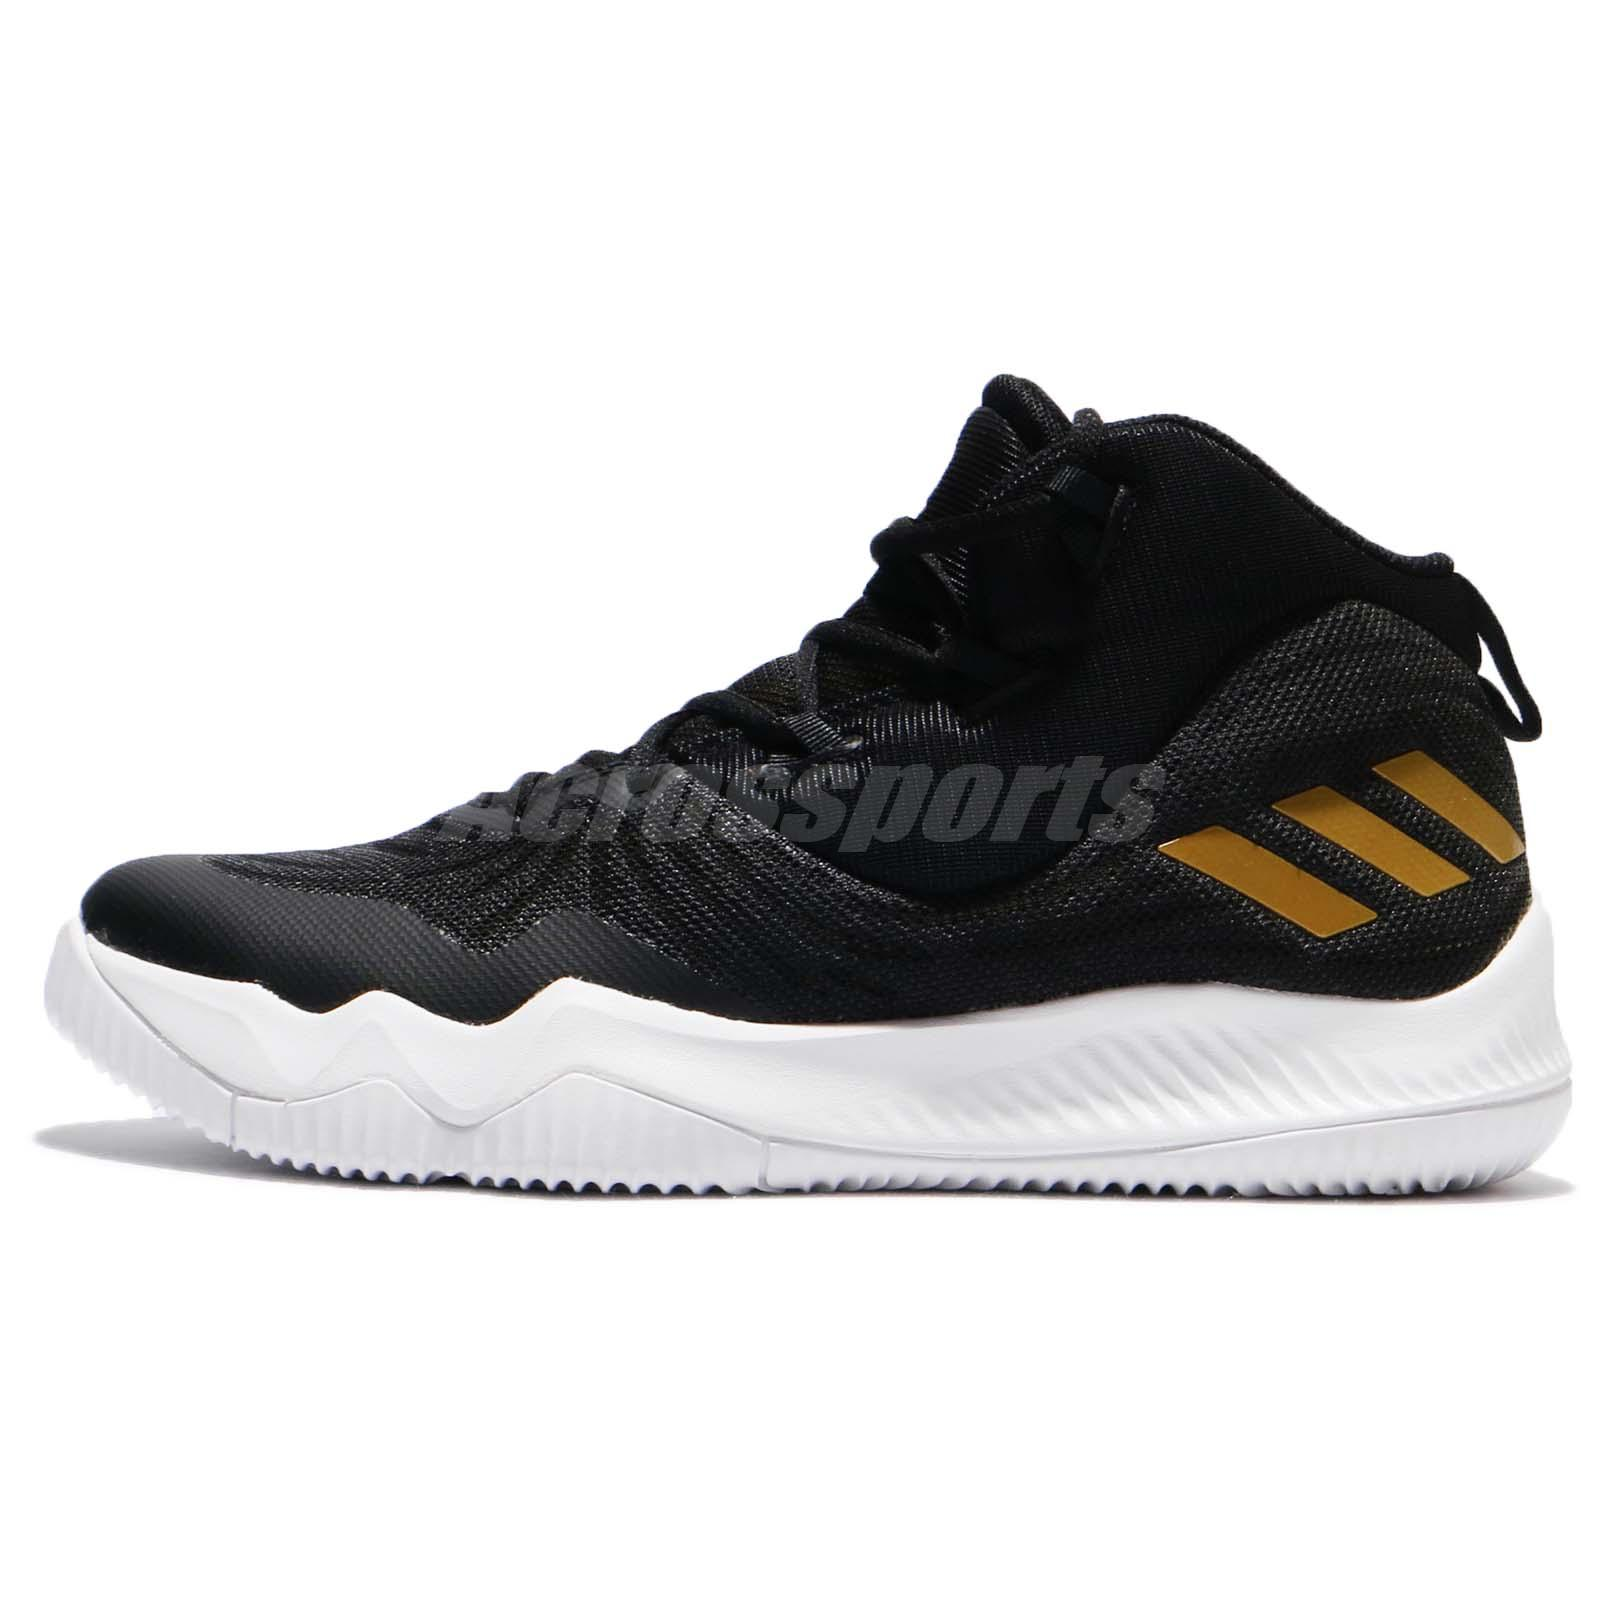 adidas rose dominate